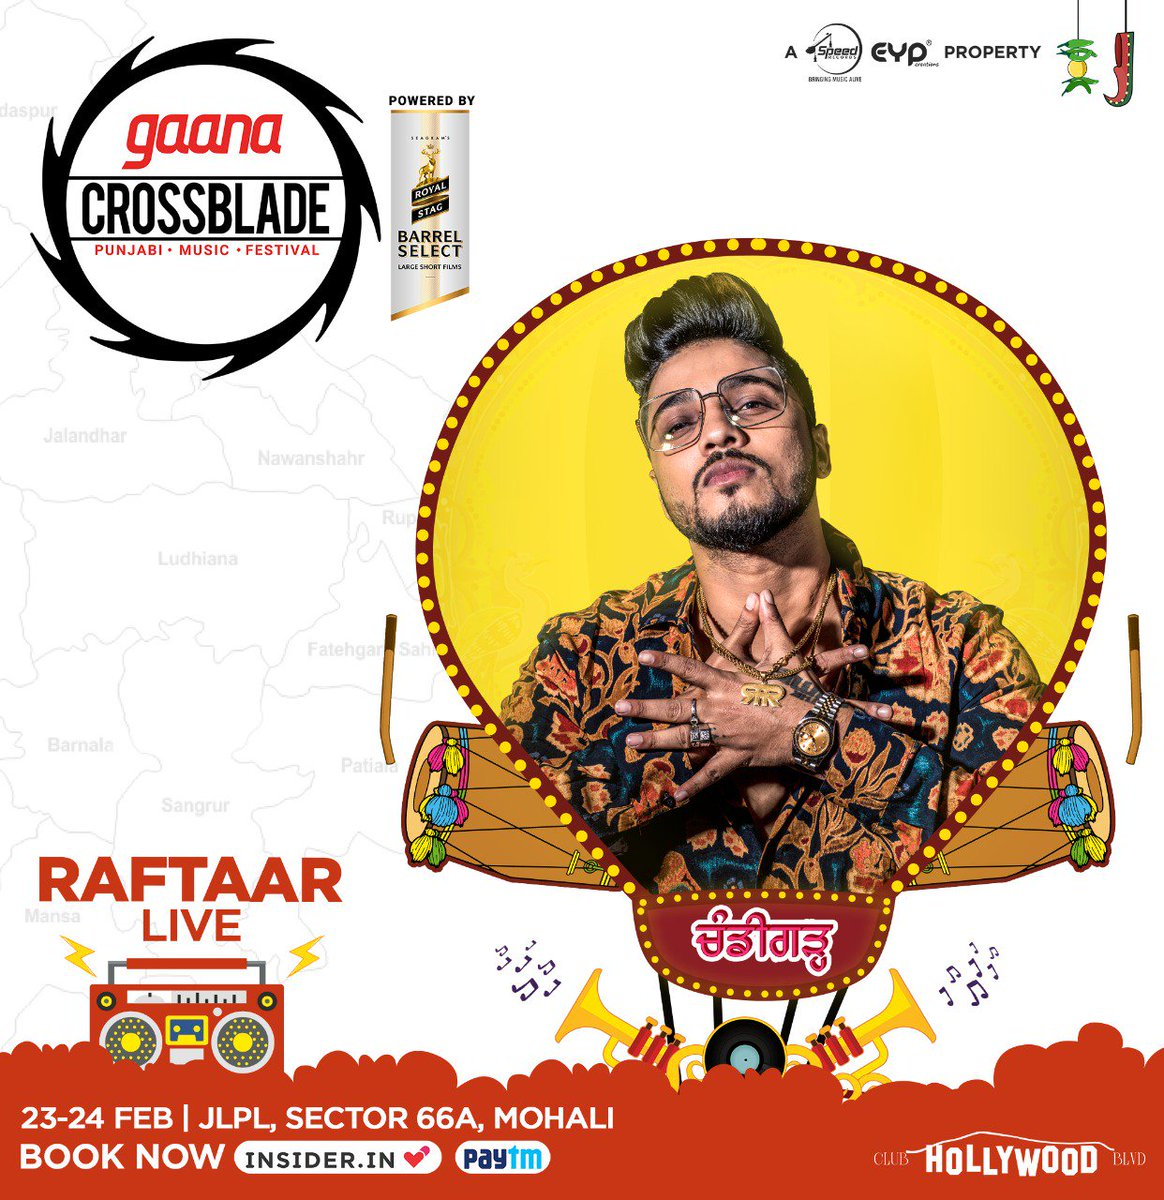 Book karo tickets puri 'Raftaar' se! Now don't give a second thought and book your tickets to @Crossbladelive, India's biggest Punjabi Music Festival! See you'll tomorrow at Mohali. @raftaarmusic @eypcreations @Speed_Records